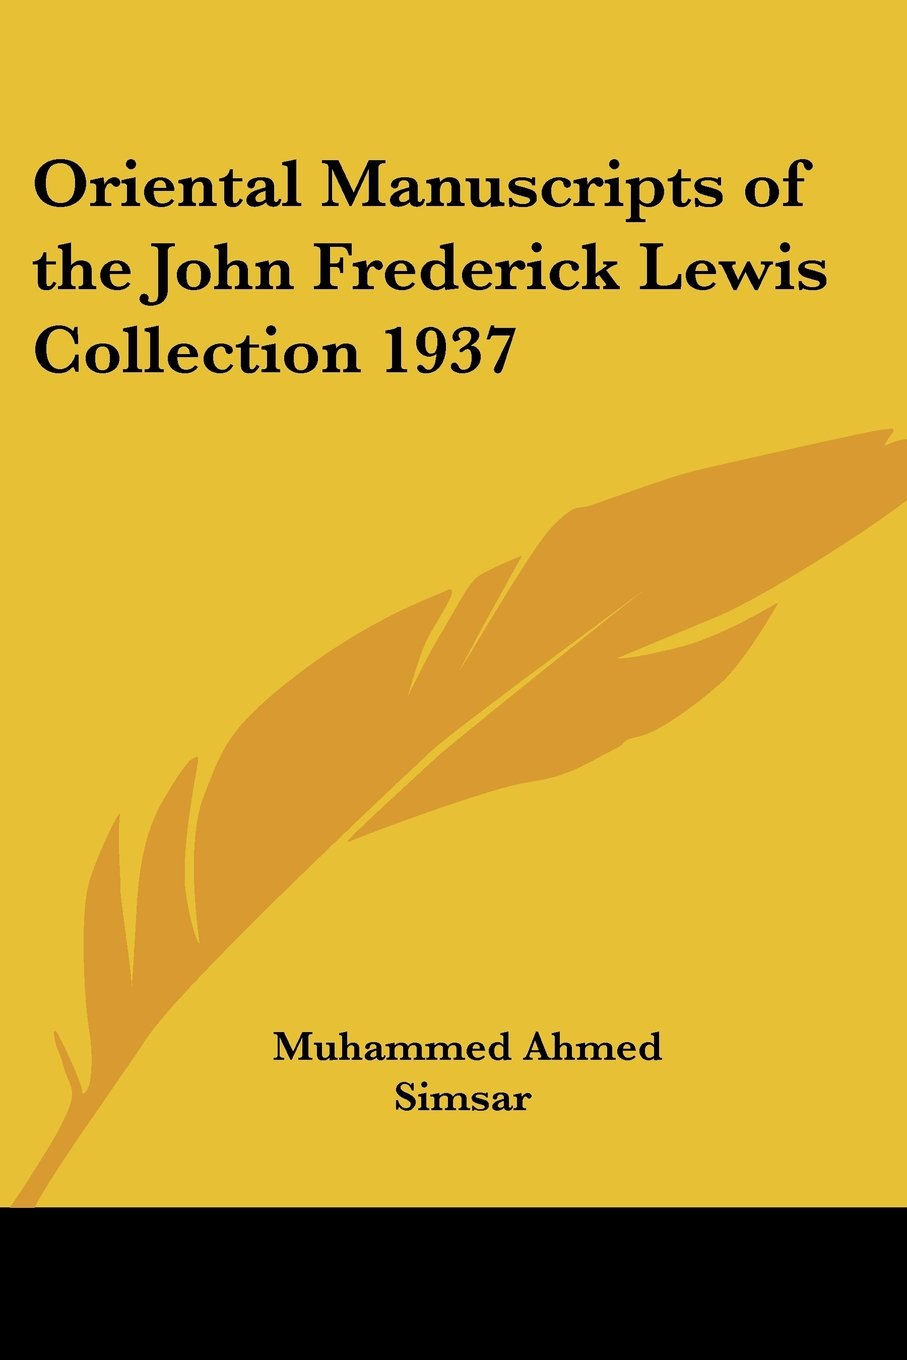 Oriental Manuscripts of the John Frederick Lewis Collection 1937